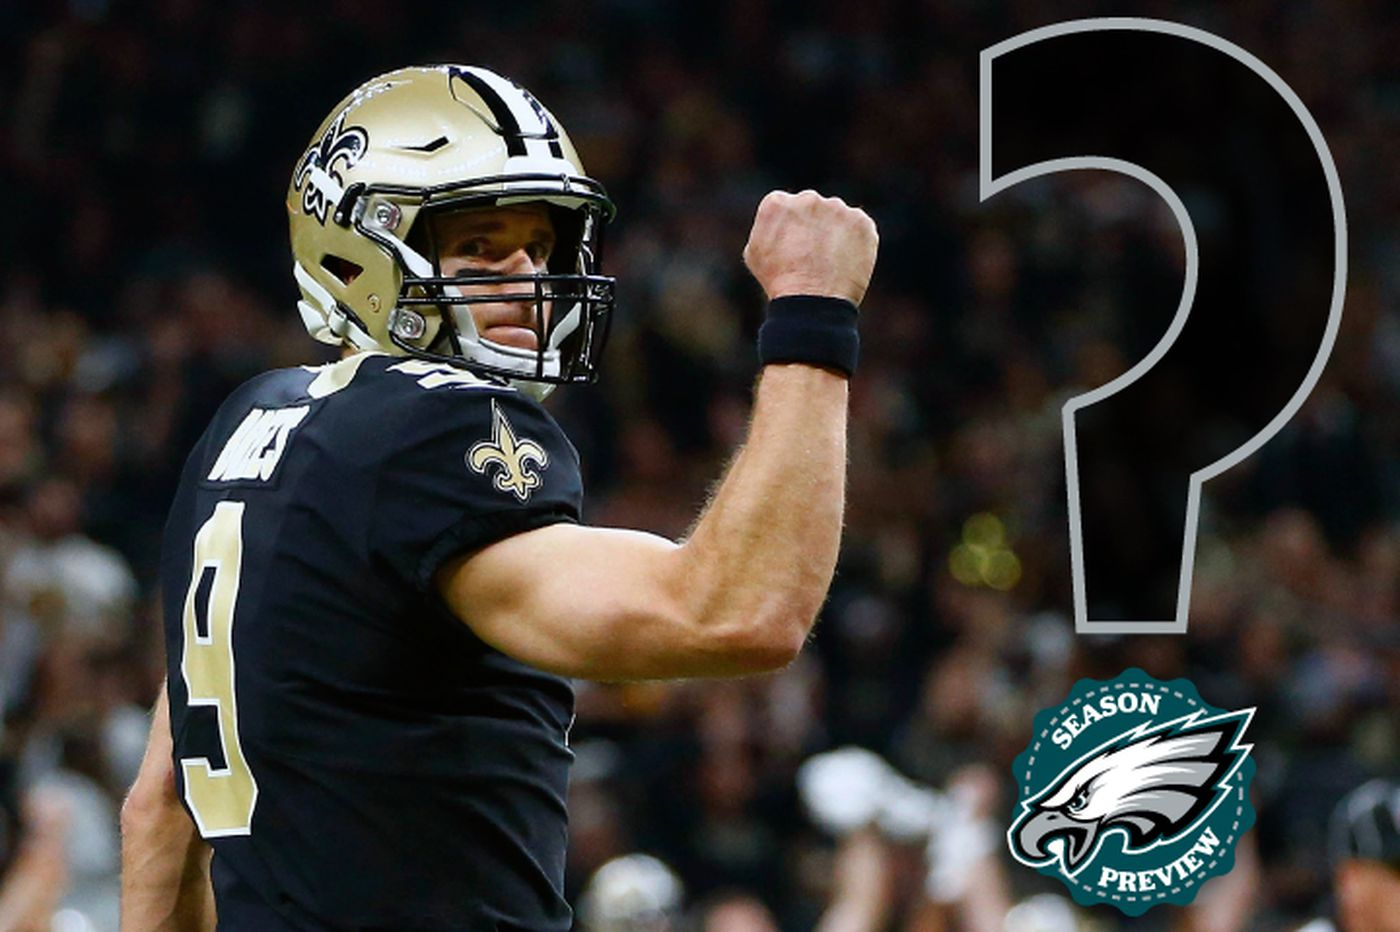 How do the Eagles stack up against the other expected NFC powers — the Cowboys, Saints, Rams, and Bears?